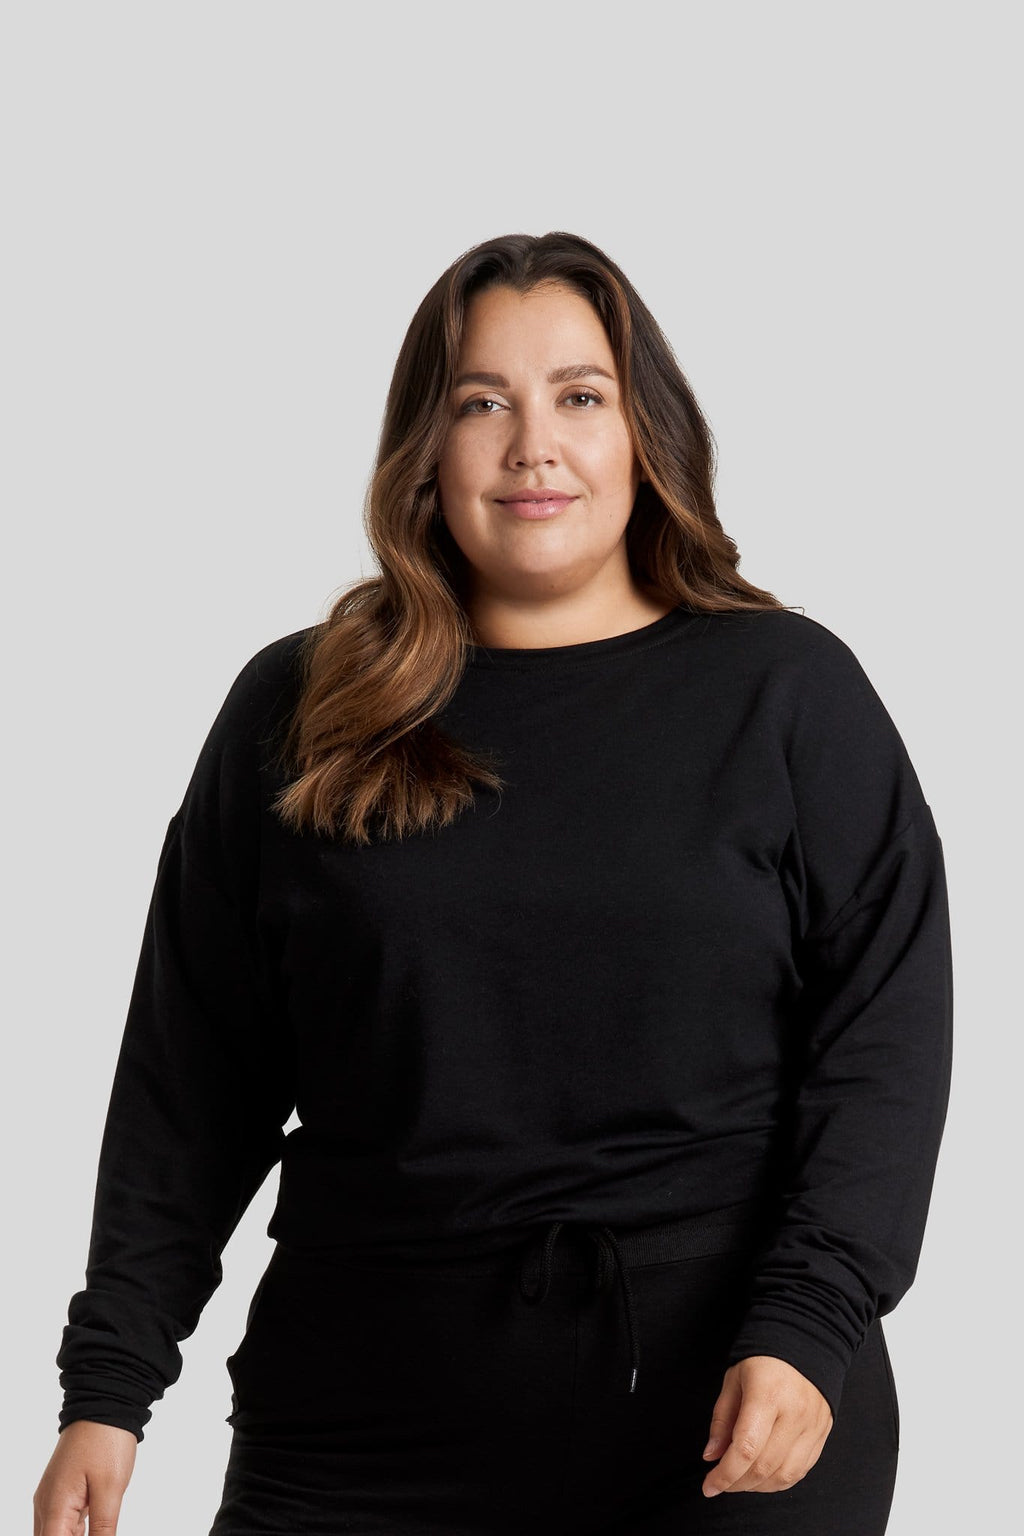 A woman wearing a black crewneck sweater